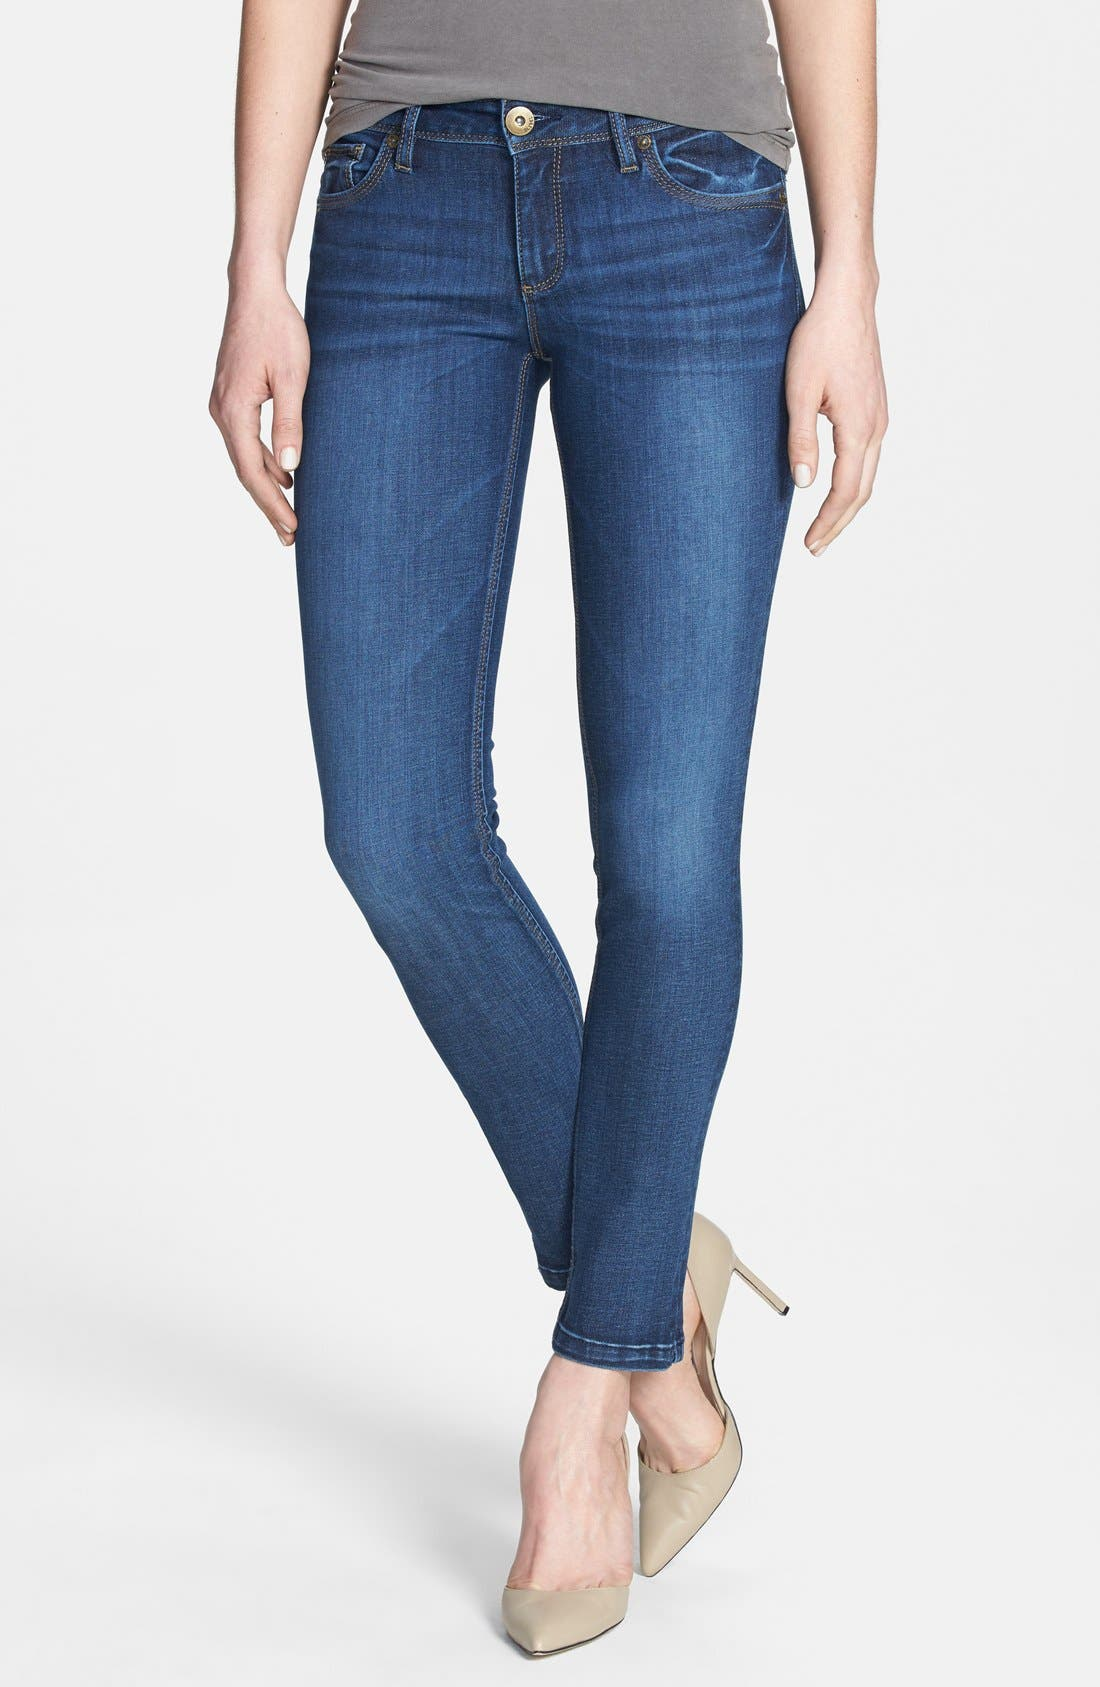 Alternate Image 1 Selected - DL1961 'Angel' Ankle Cigarette Jeans (Wall)